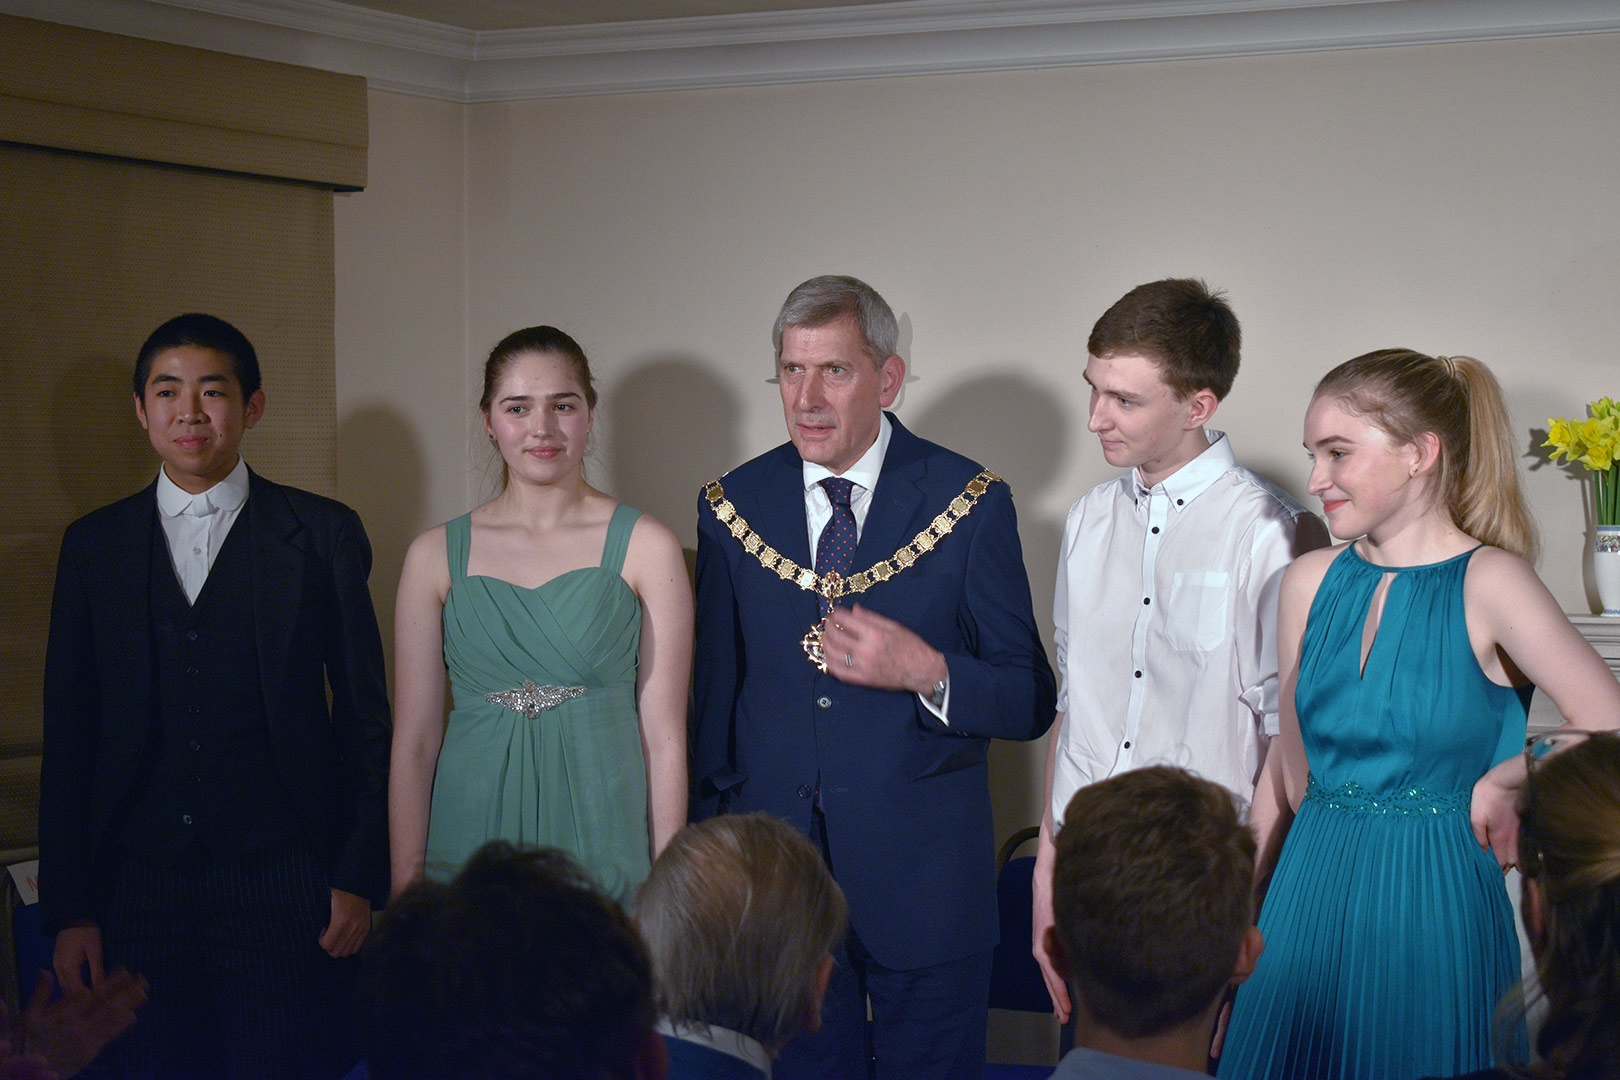 2018 Local Young Performers with His Worship, the Mayor of Woking, Cllr Graham Cundy